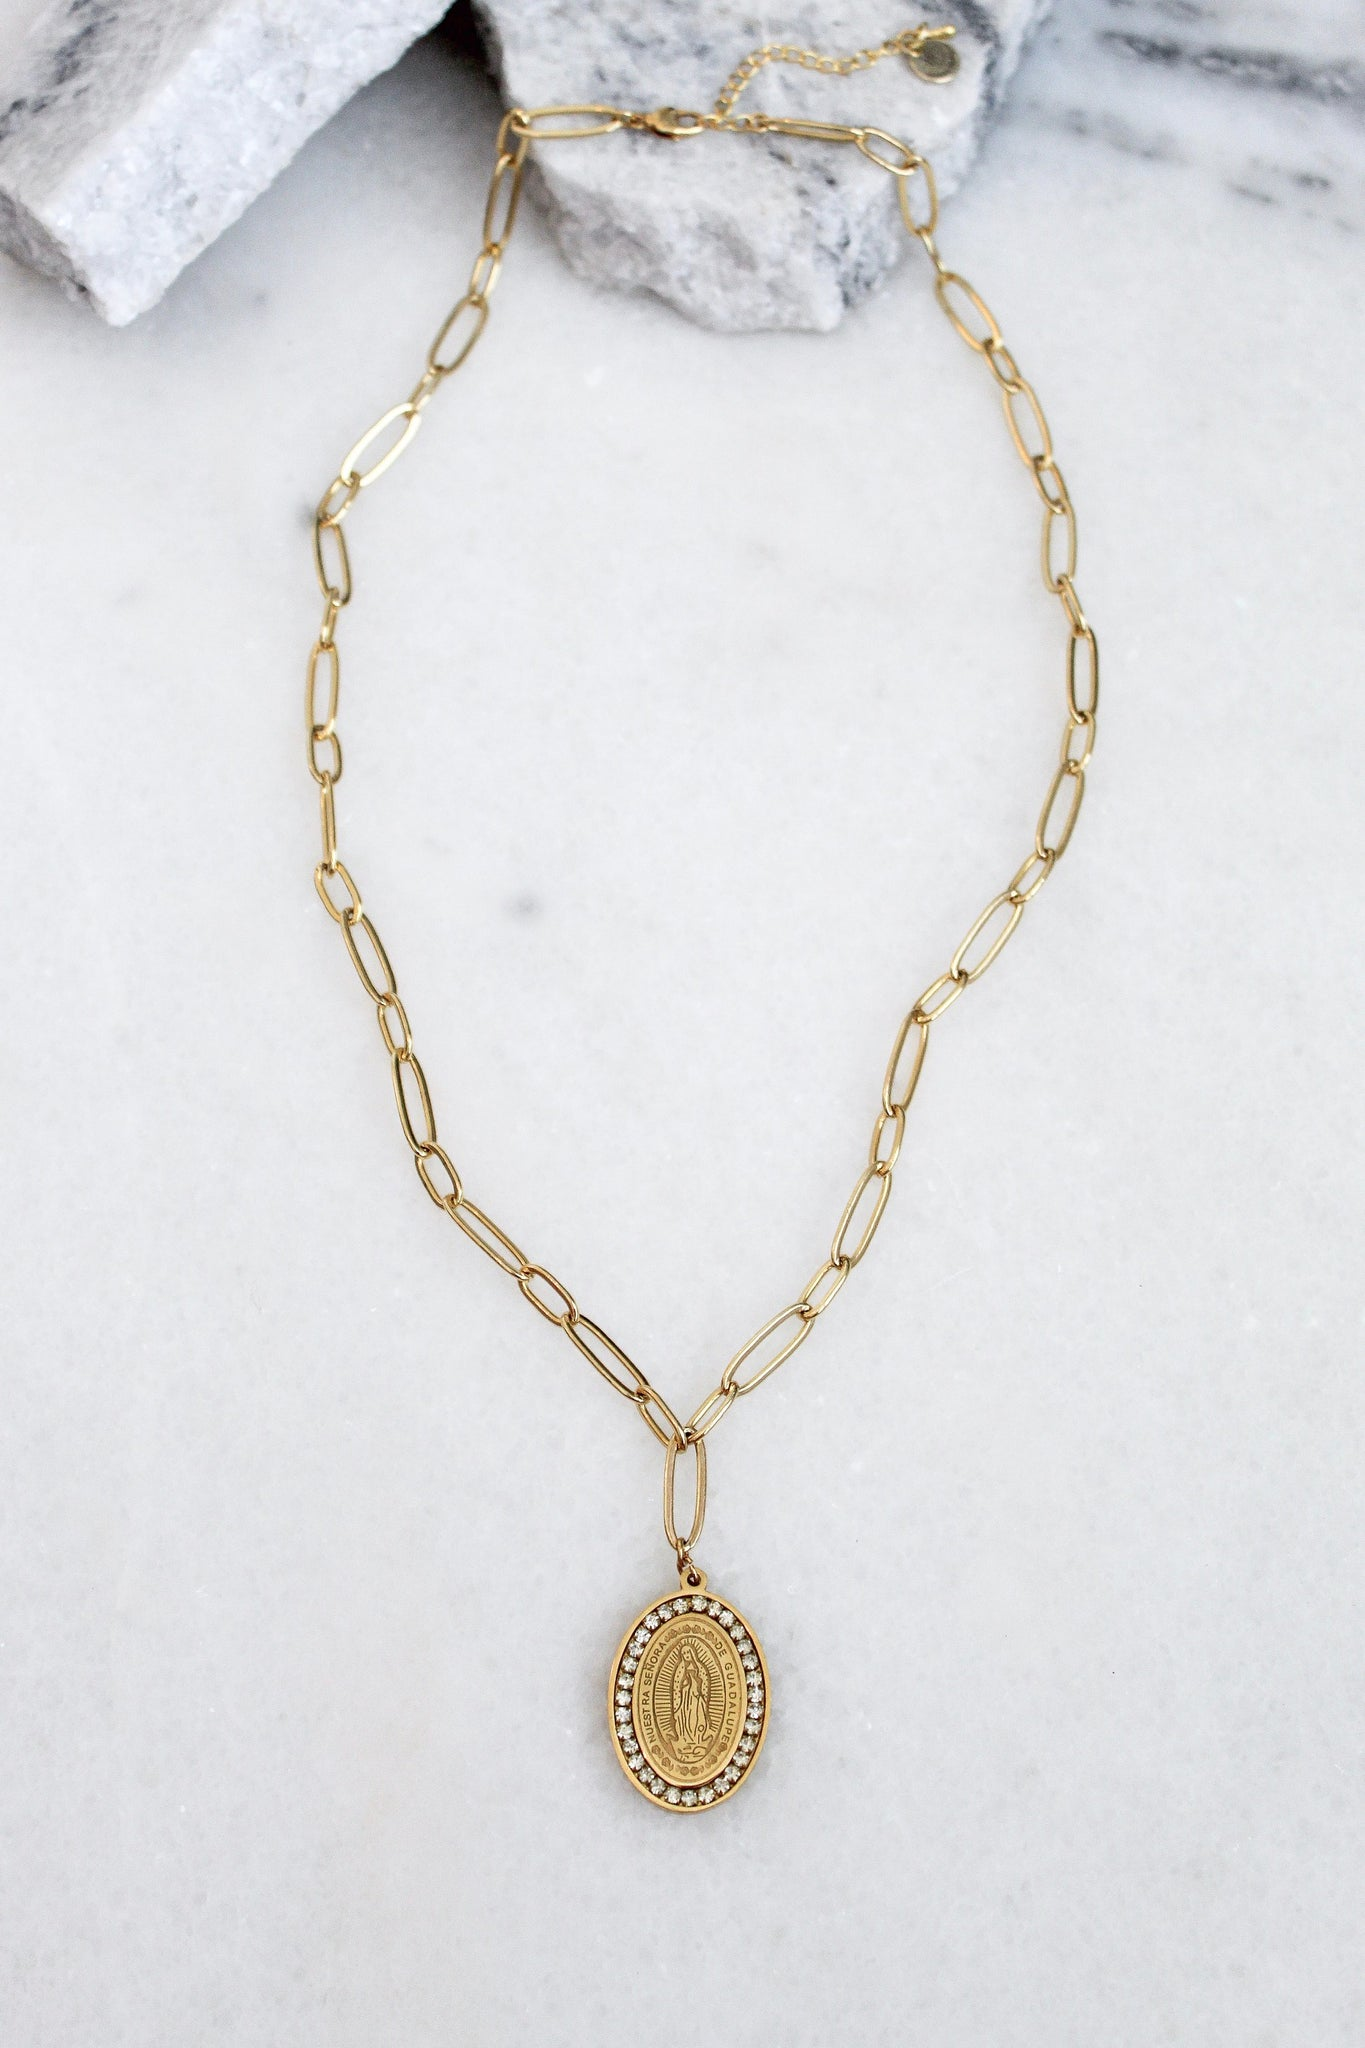 Pierre Gold Necklace